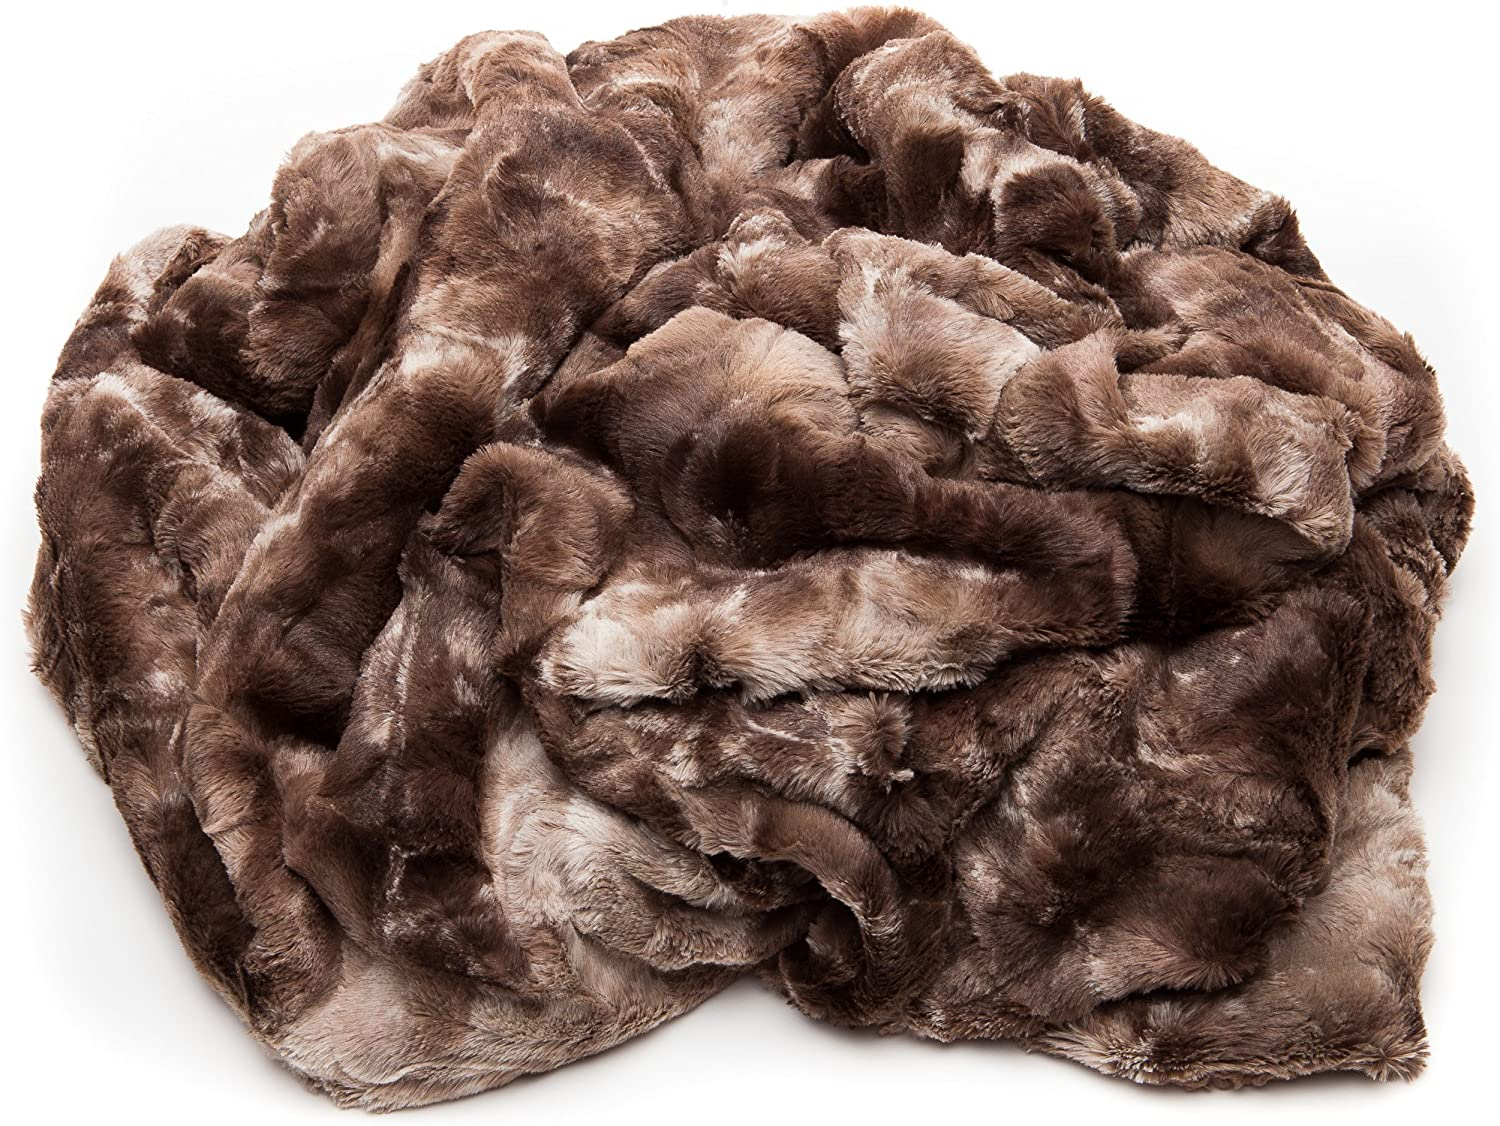 Chanasya Fuzzy Faux Fur Throw Blanket - Light Weight Blanket for Bed Couch and Living Room Suitable for Fall Winter and Spring (50x65 Inches) Chocolate: Home & Kitchen